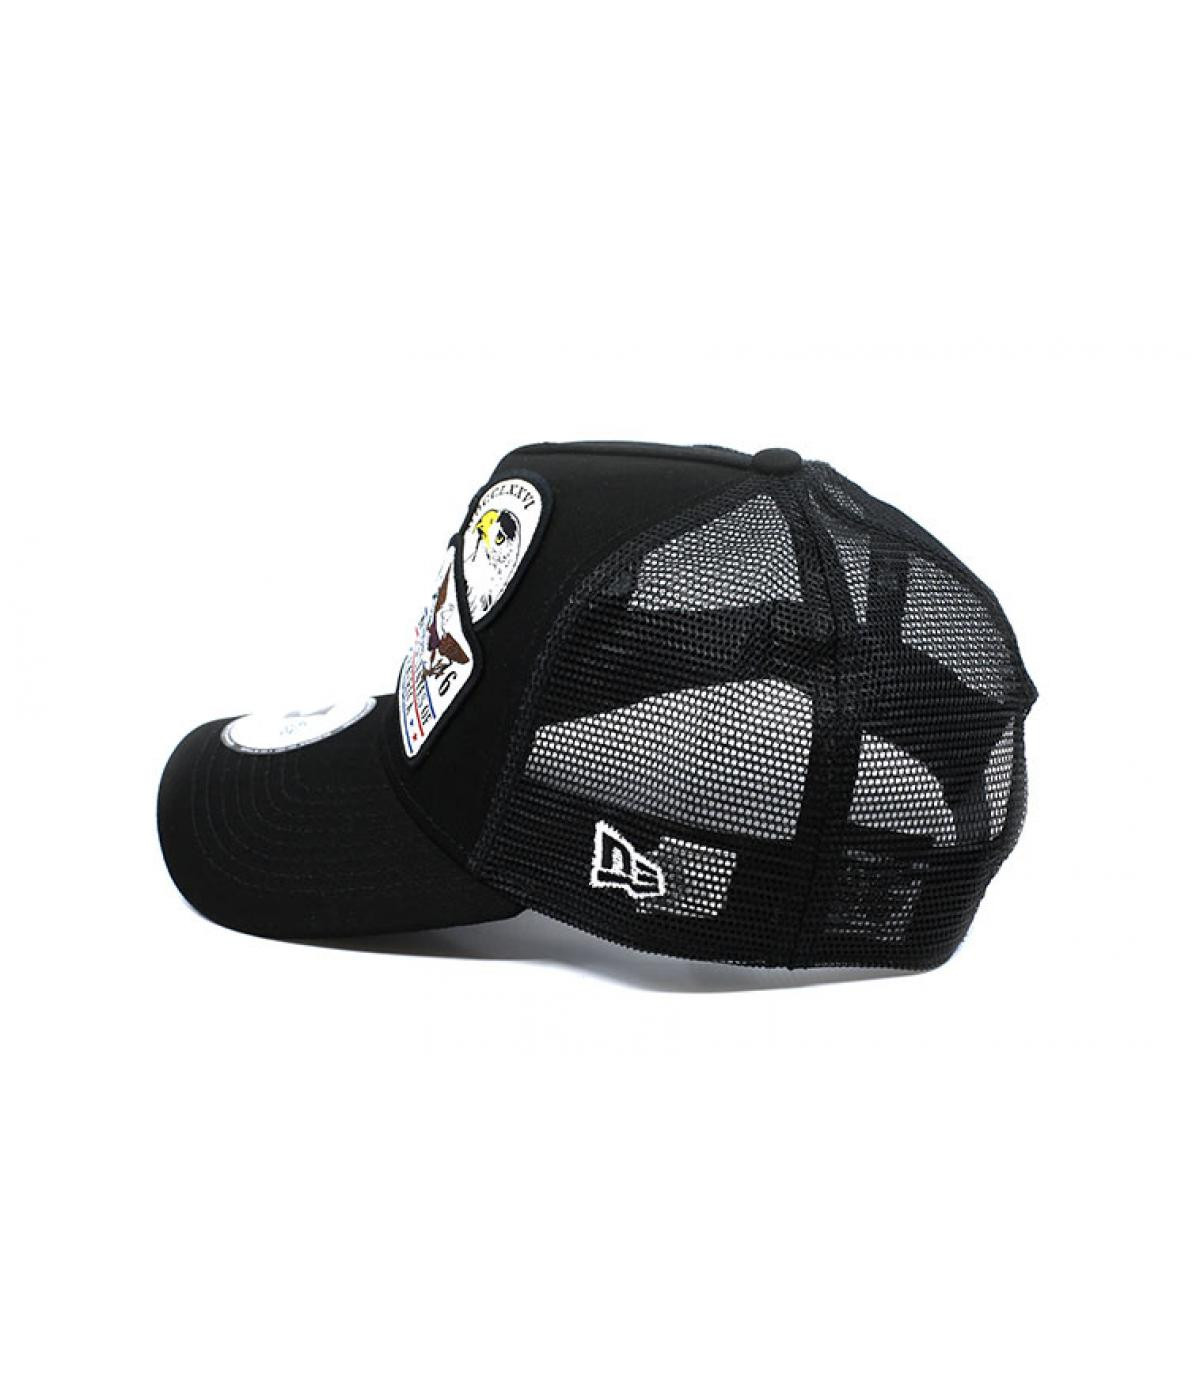 Détails Trucker Overlapping patch black - image 4